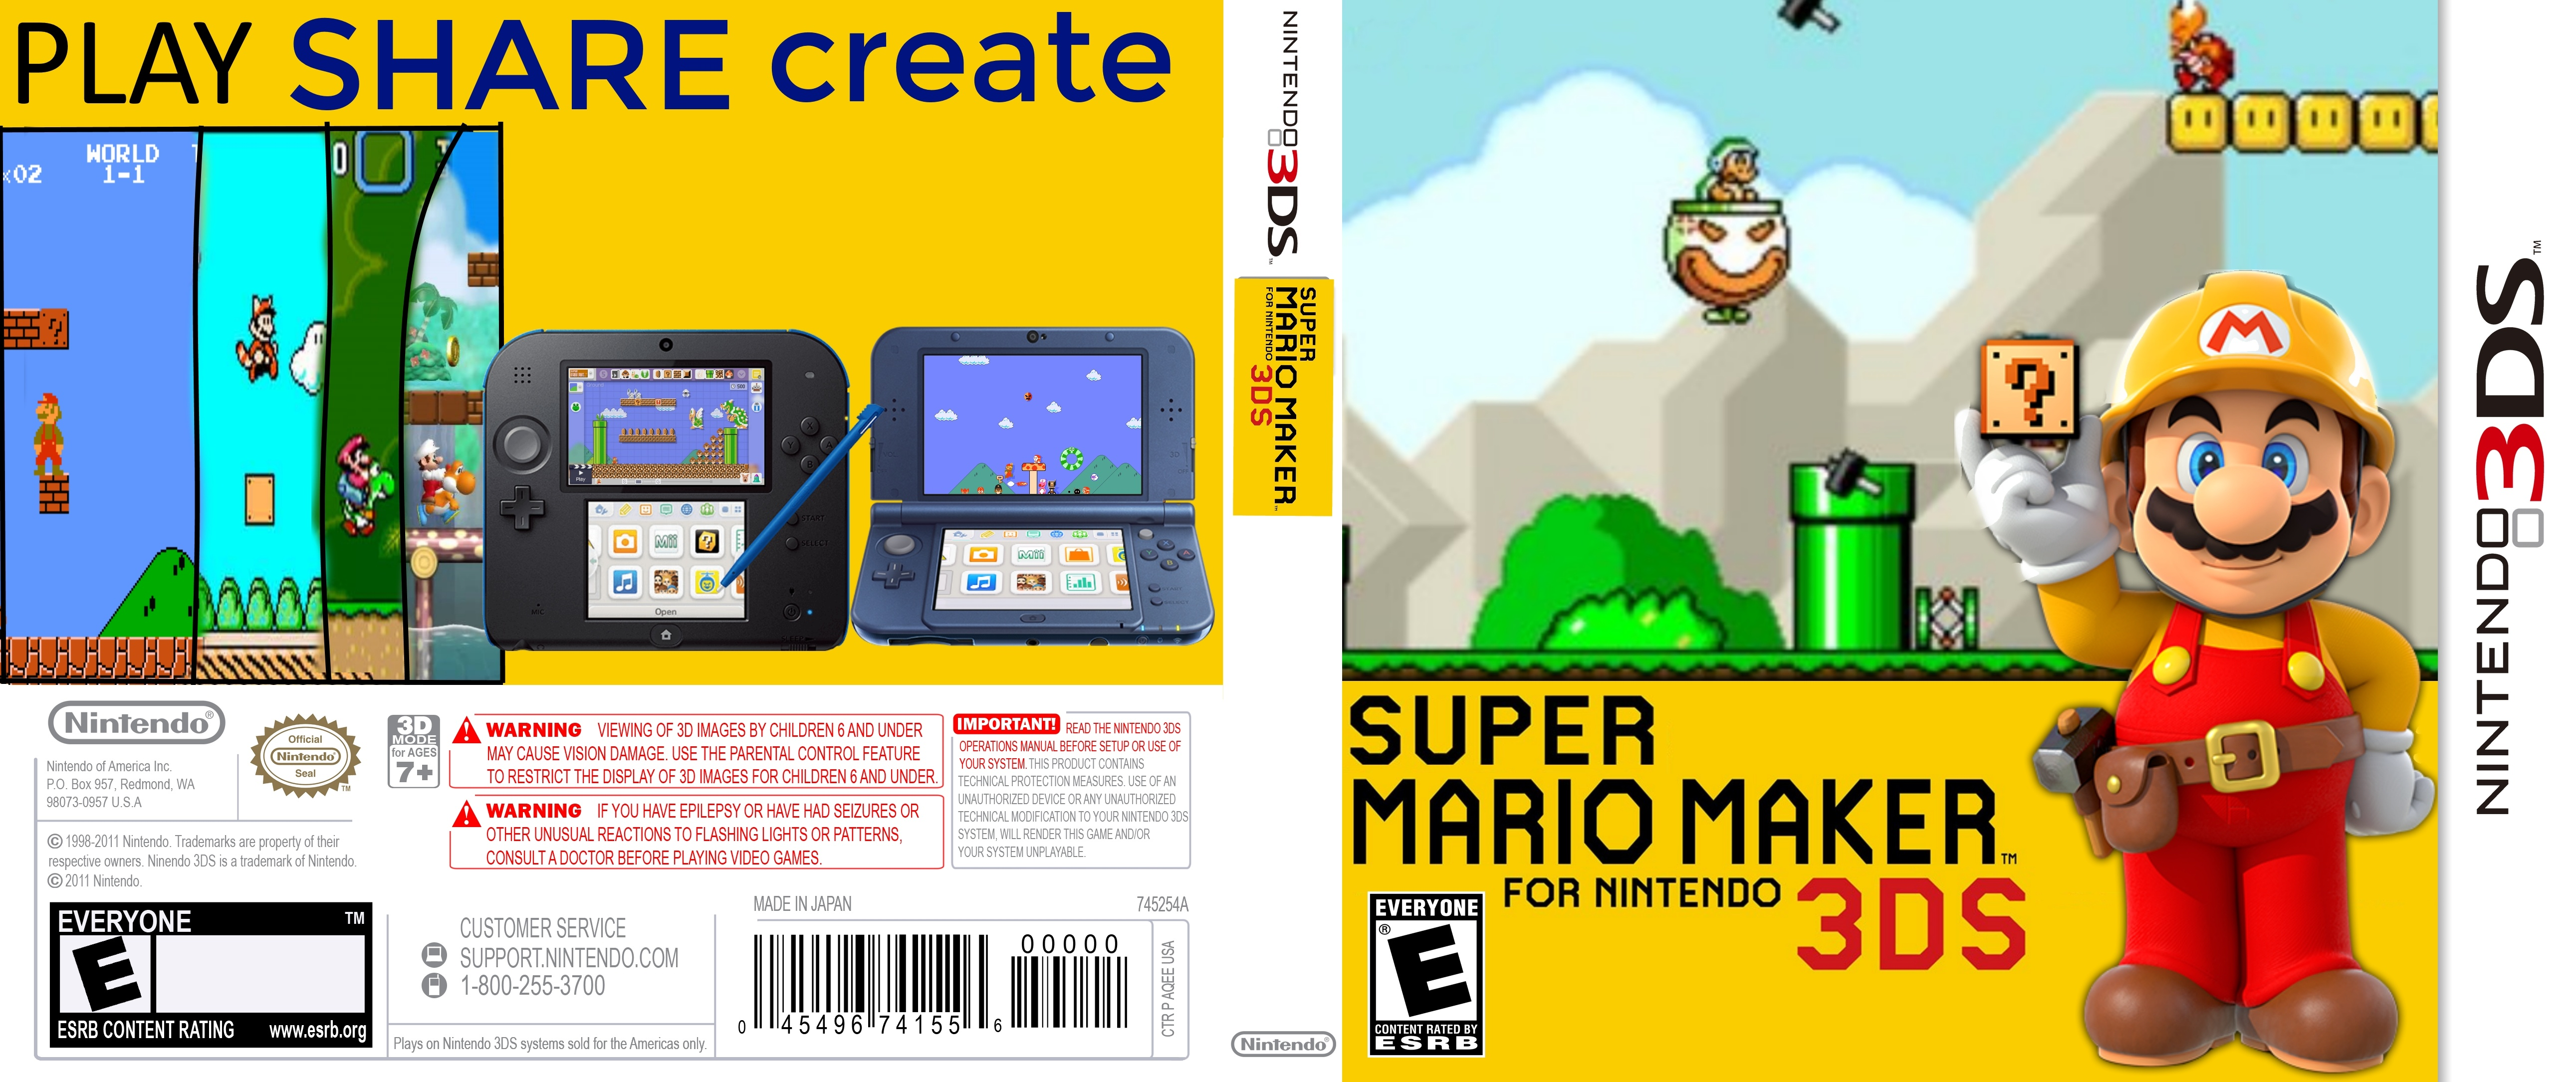 Super Mario Maker : For Nintendo 3DS box cover